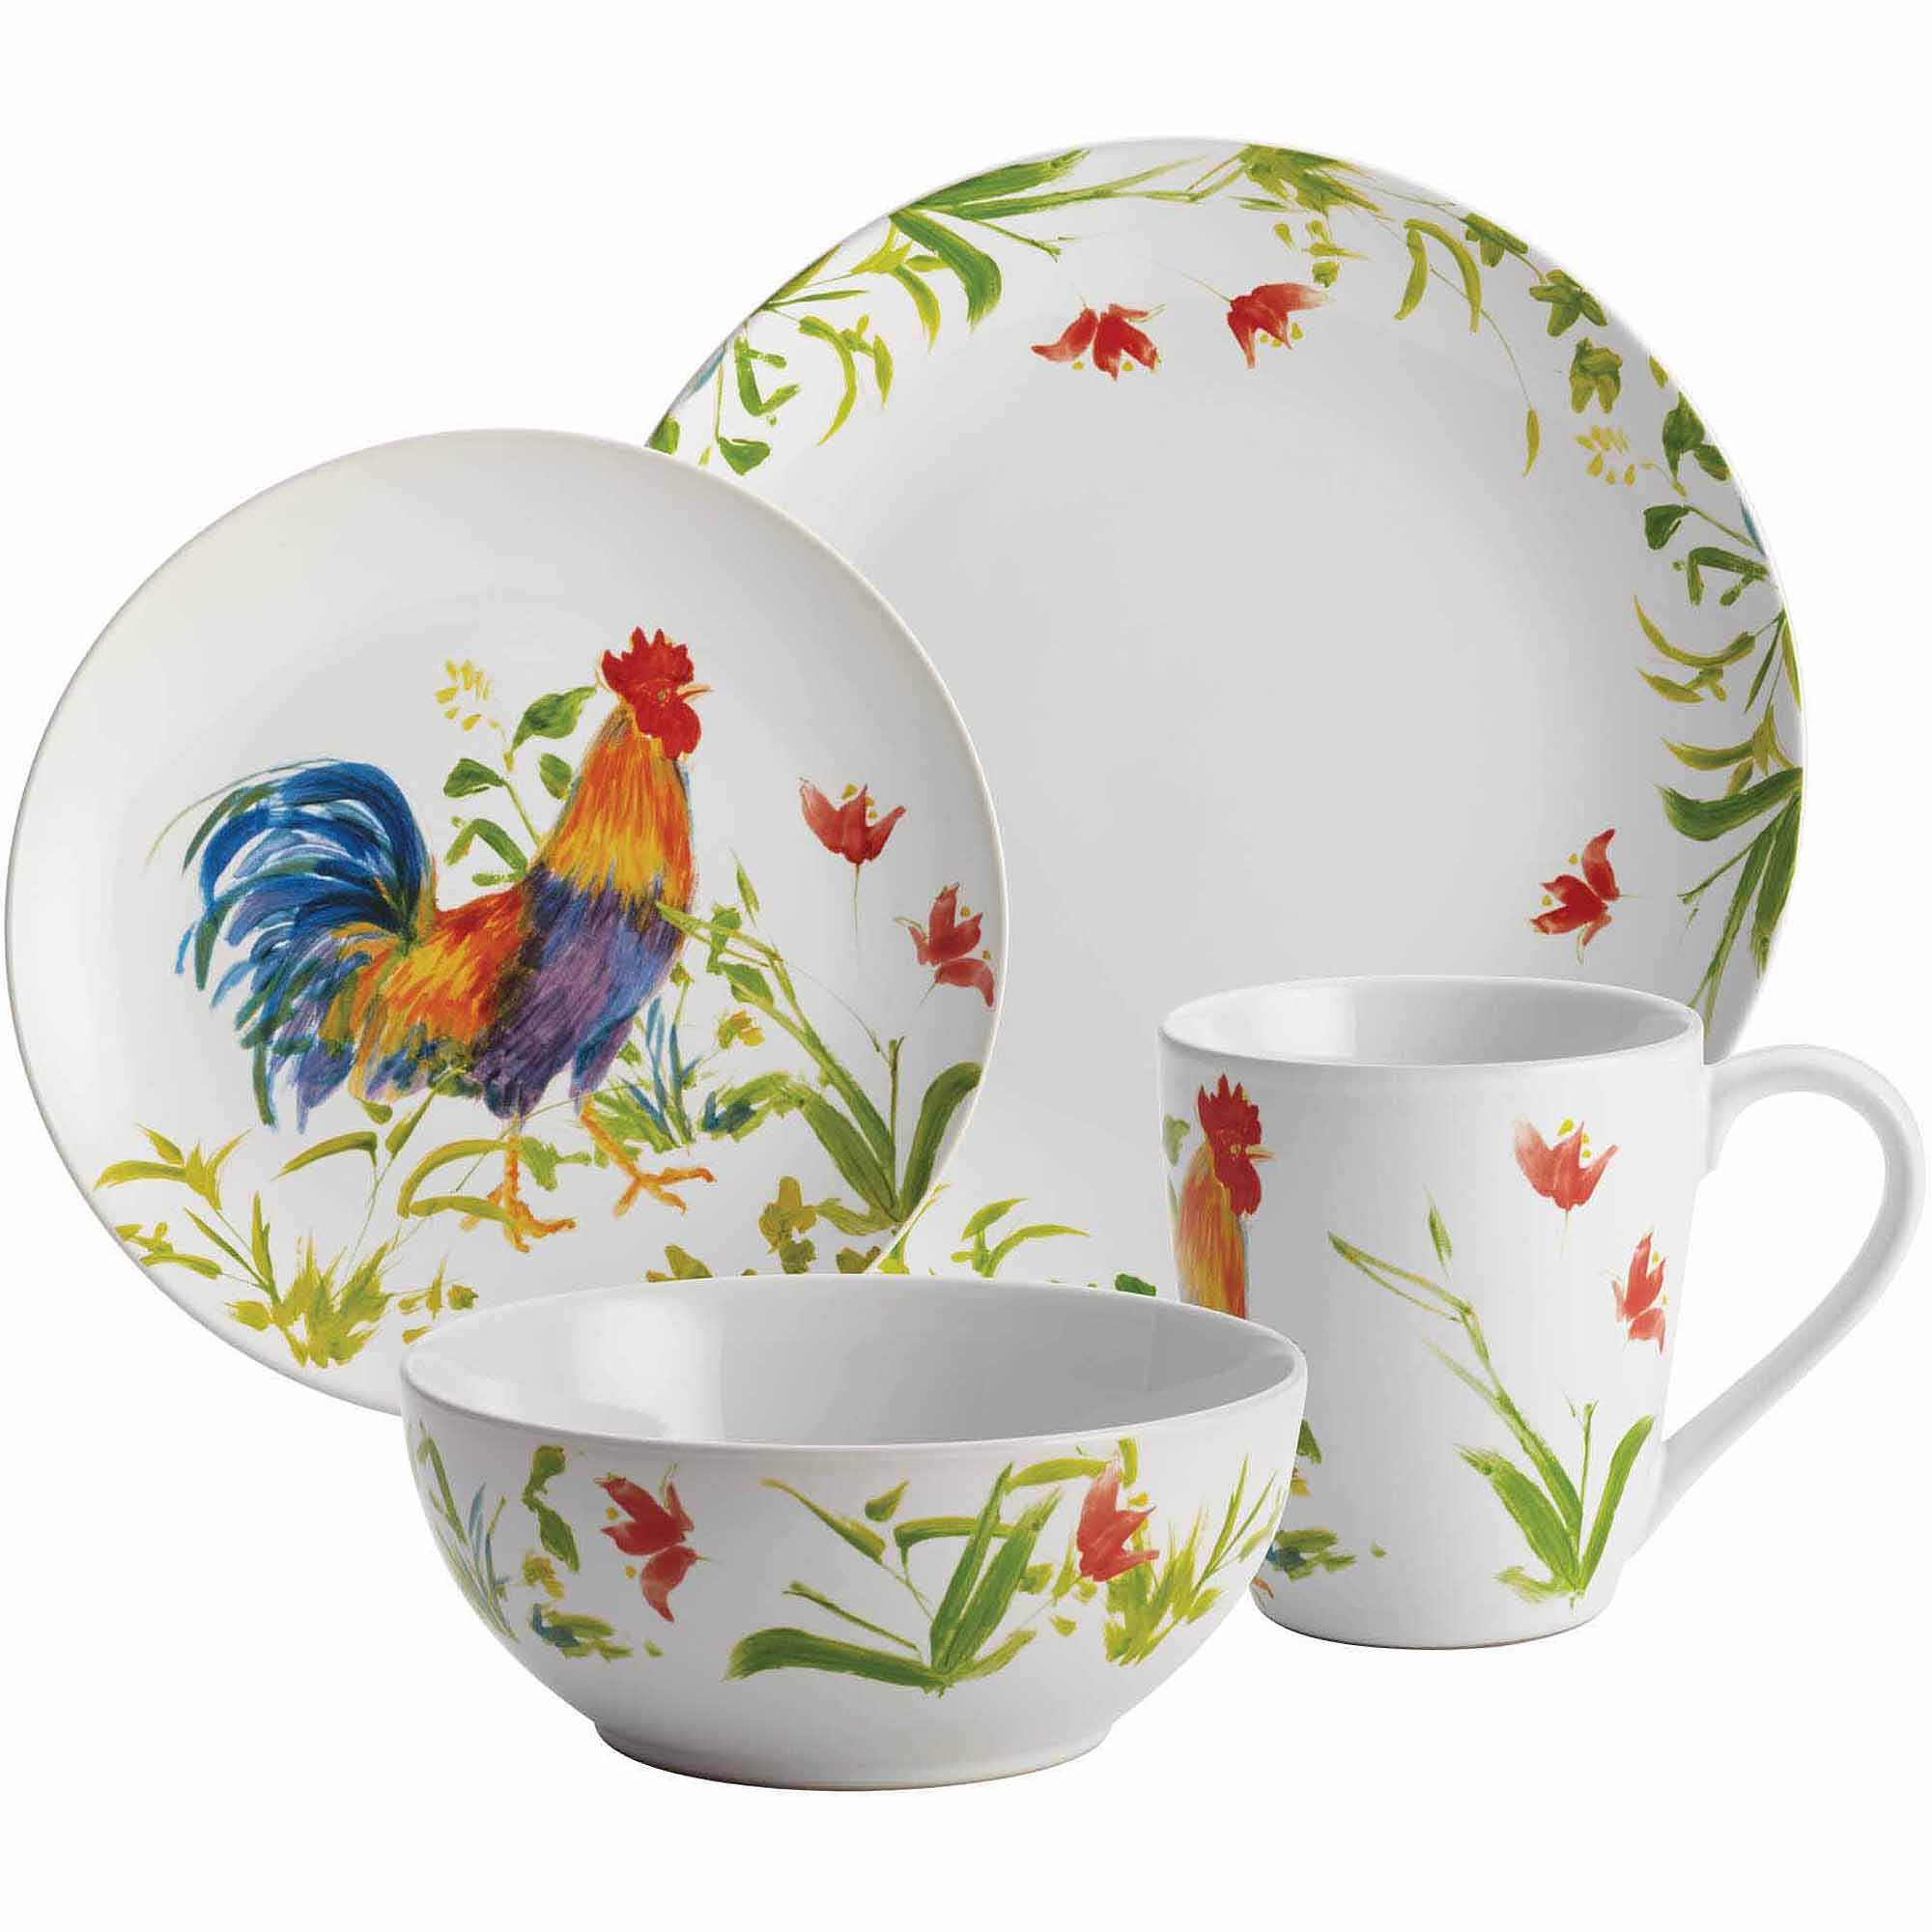 BonJour Dinnerware Meadow Rooster Stoneware 16-Piece Set, Print ...